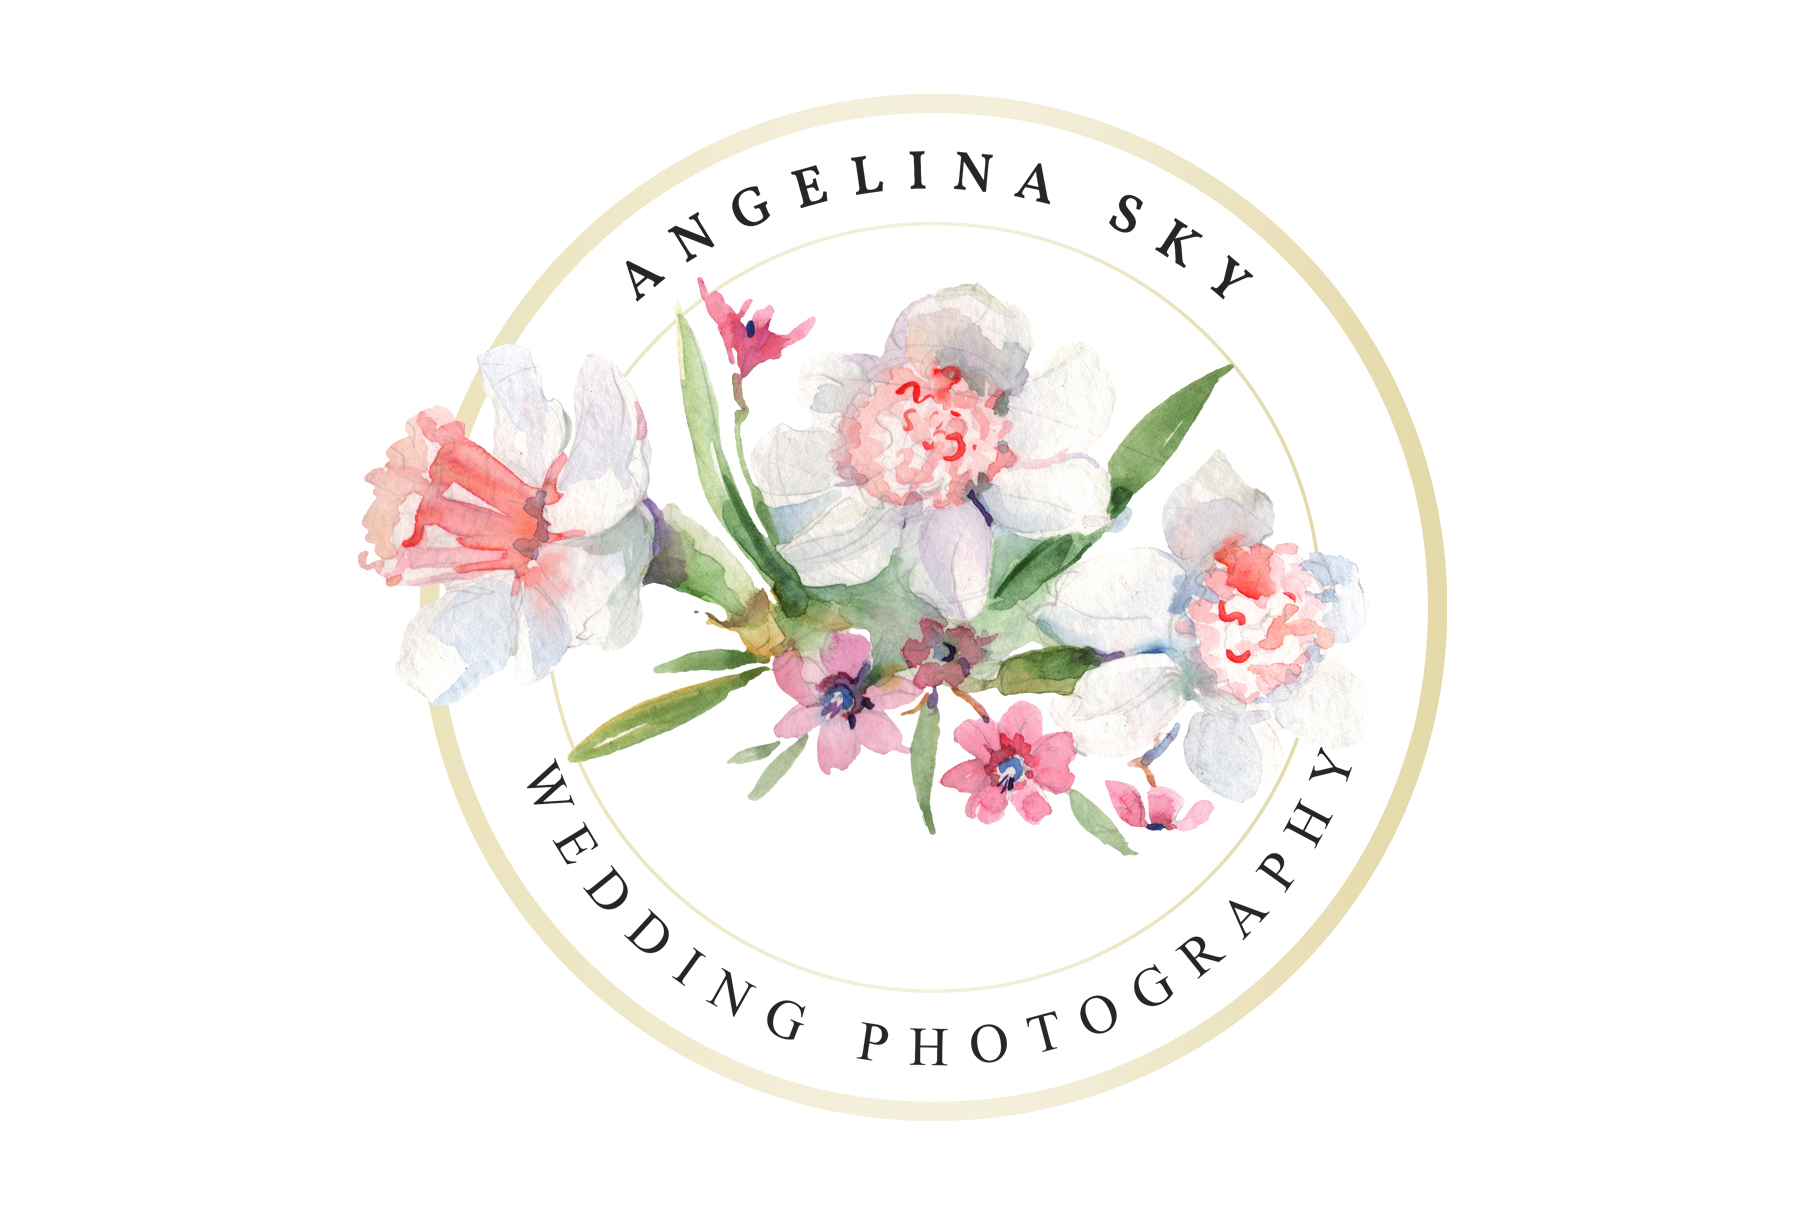 LOGO with roses and narcissus Watercolor png example image 2